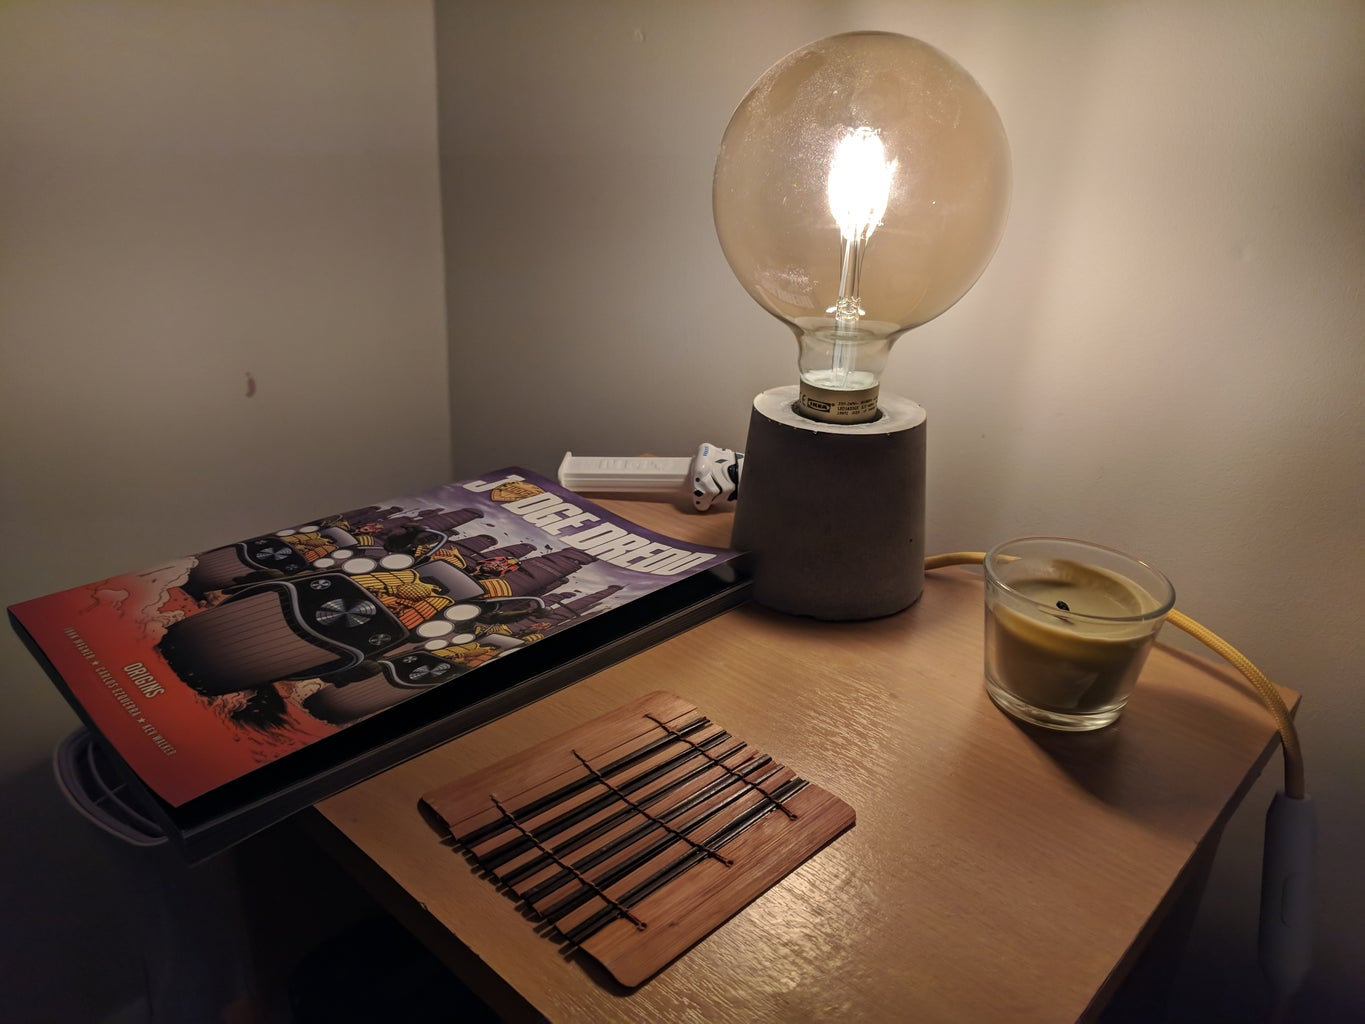 Enjoy Your New Lamp/s... I Made Two